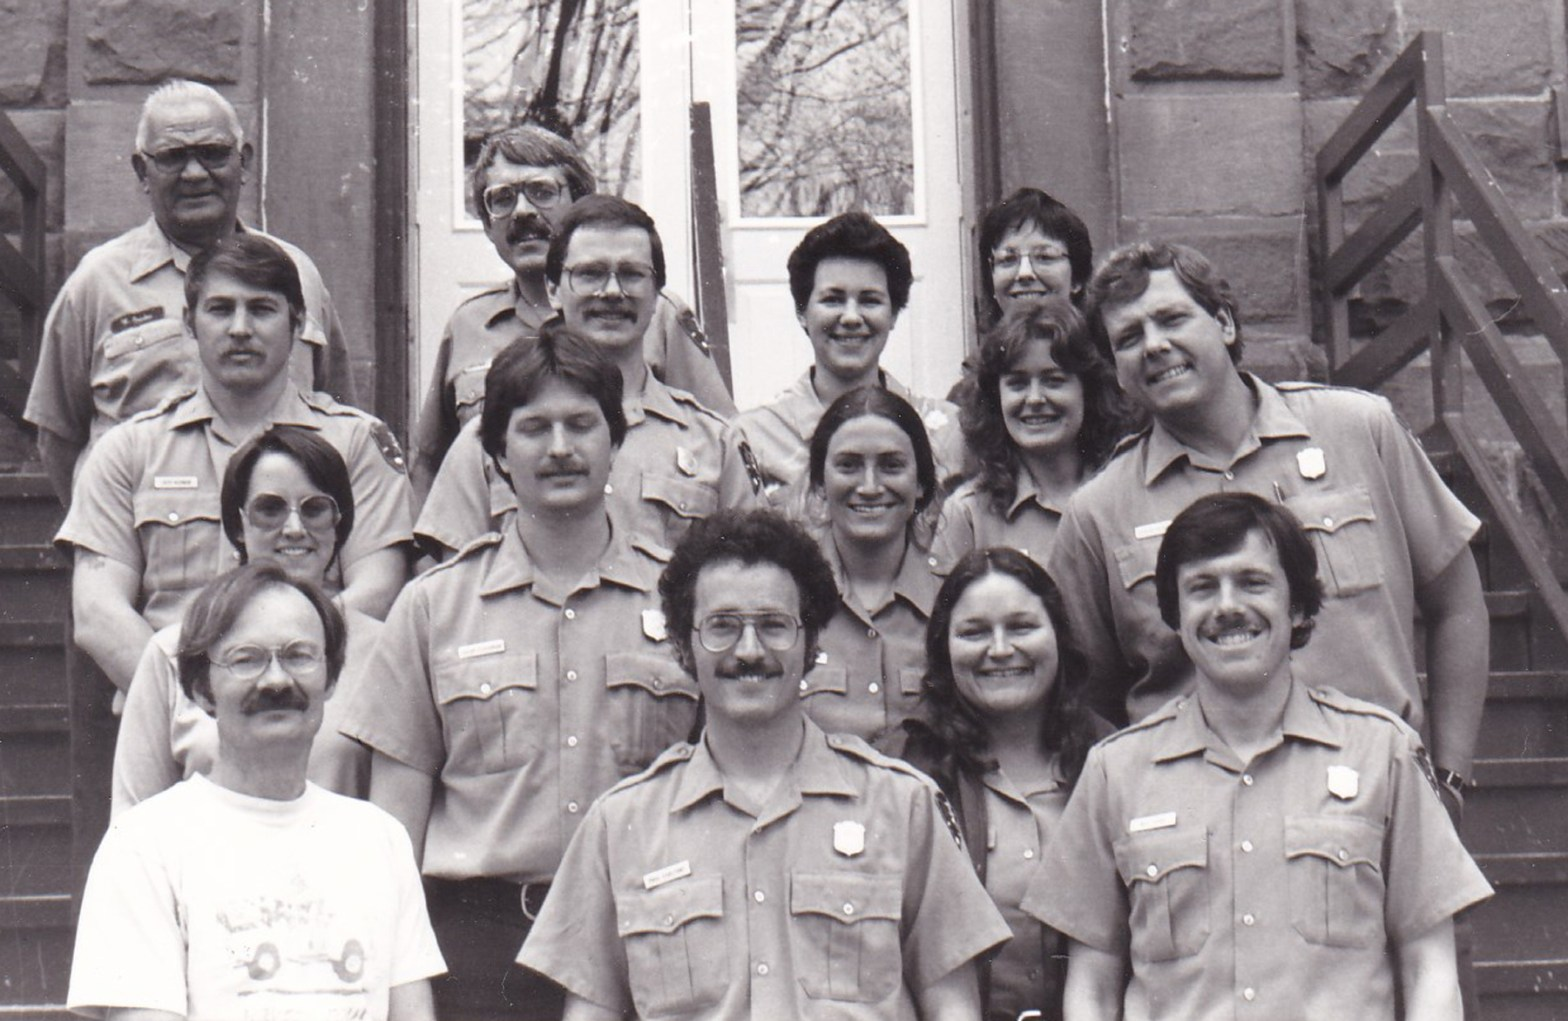 1986 seasonal staff - Diane is standing behind her staff (upper right corner of the group)